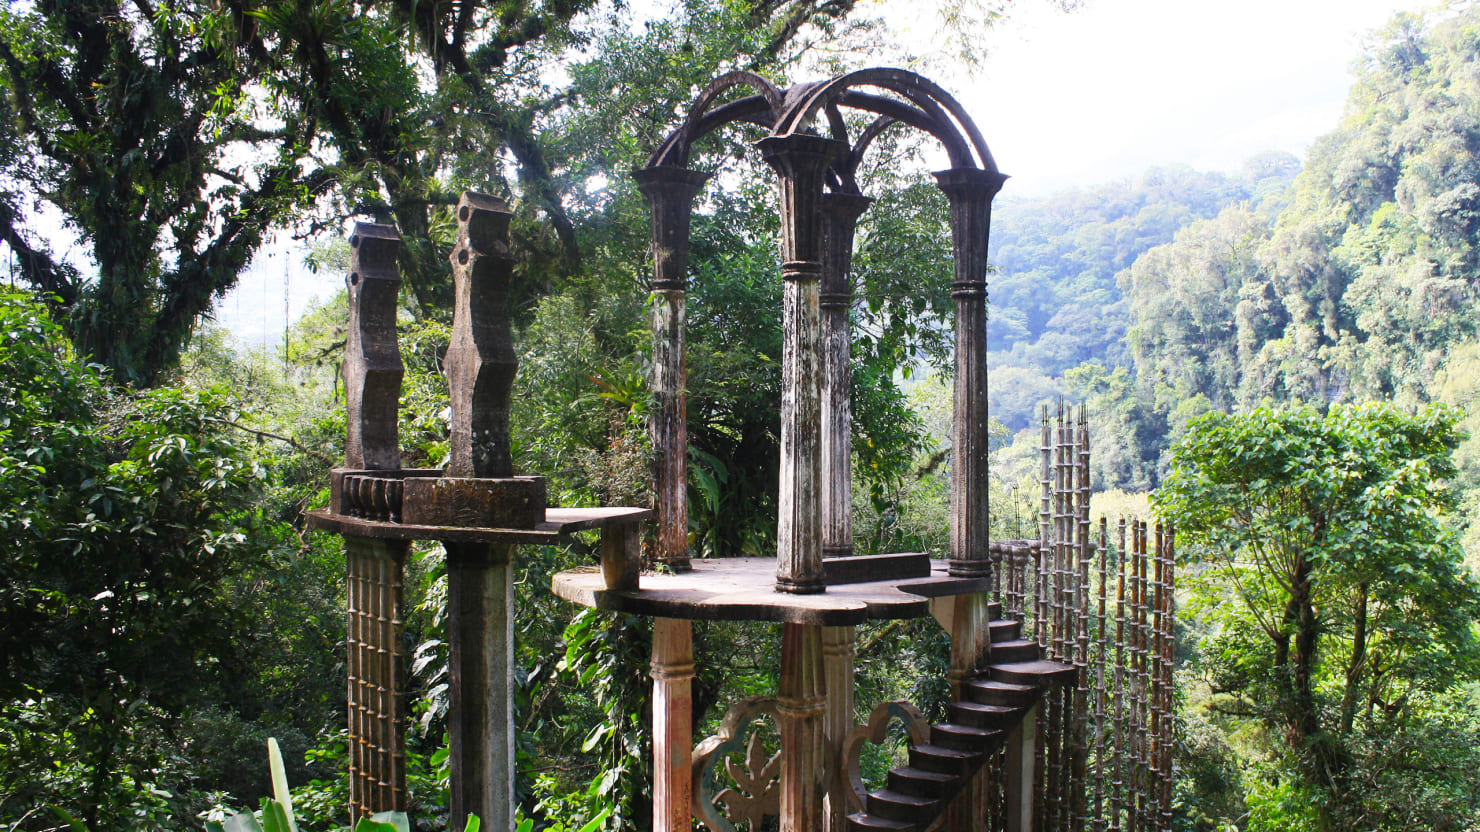 Las Pozas: A Royal Wizard's Psychedelic Palace in the Mexican Jungle